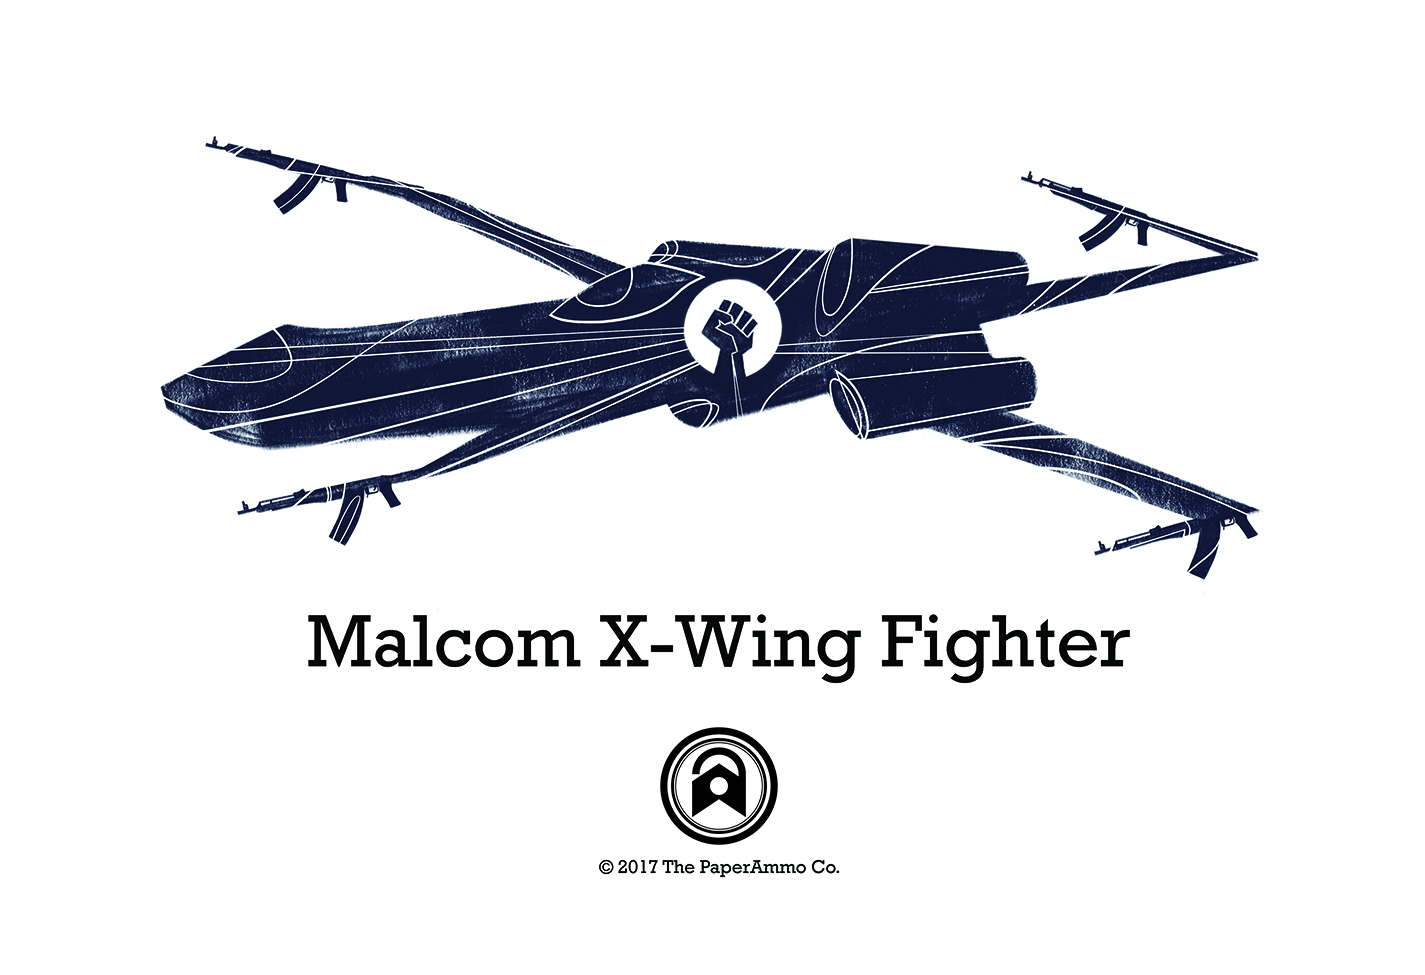 Malcom X-Wing Fighter